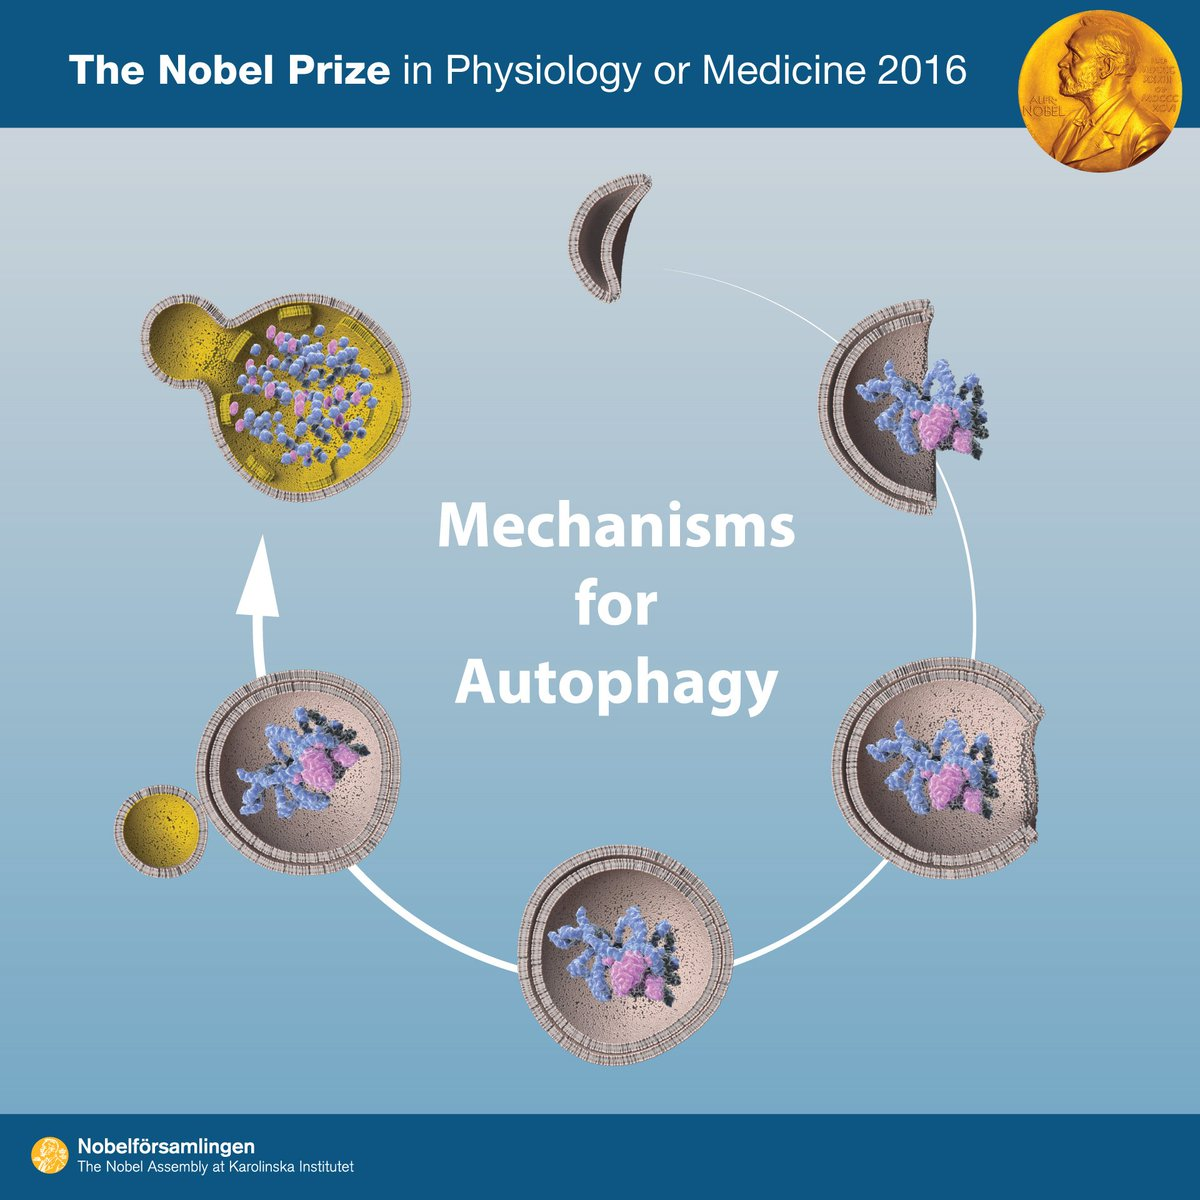 "Autophagy ""self eating"" is a process for degrading and recycling cellular components #NobelPrize #Medicine"